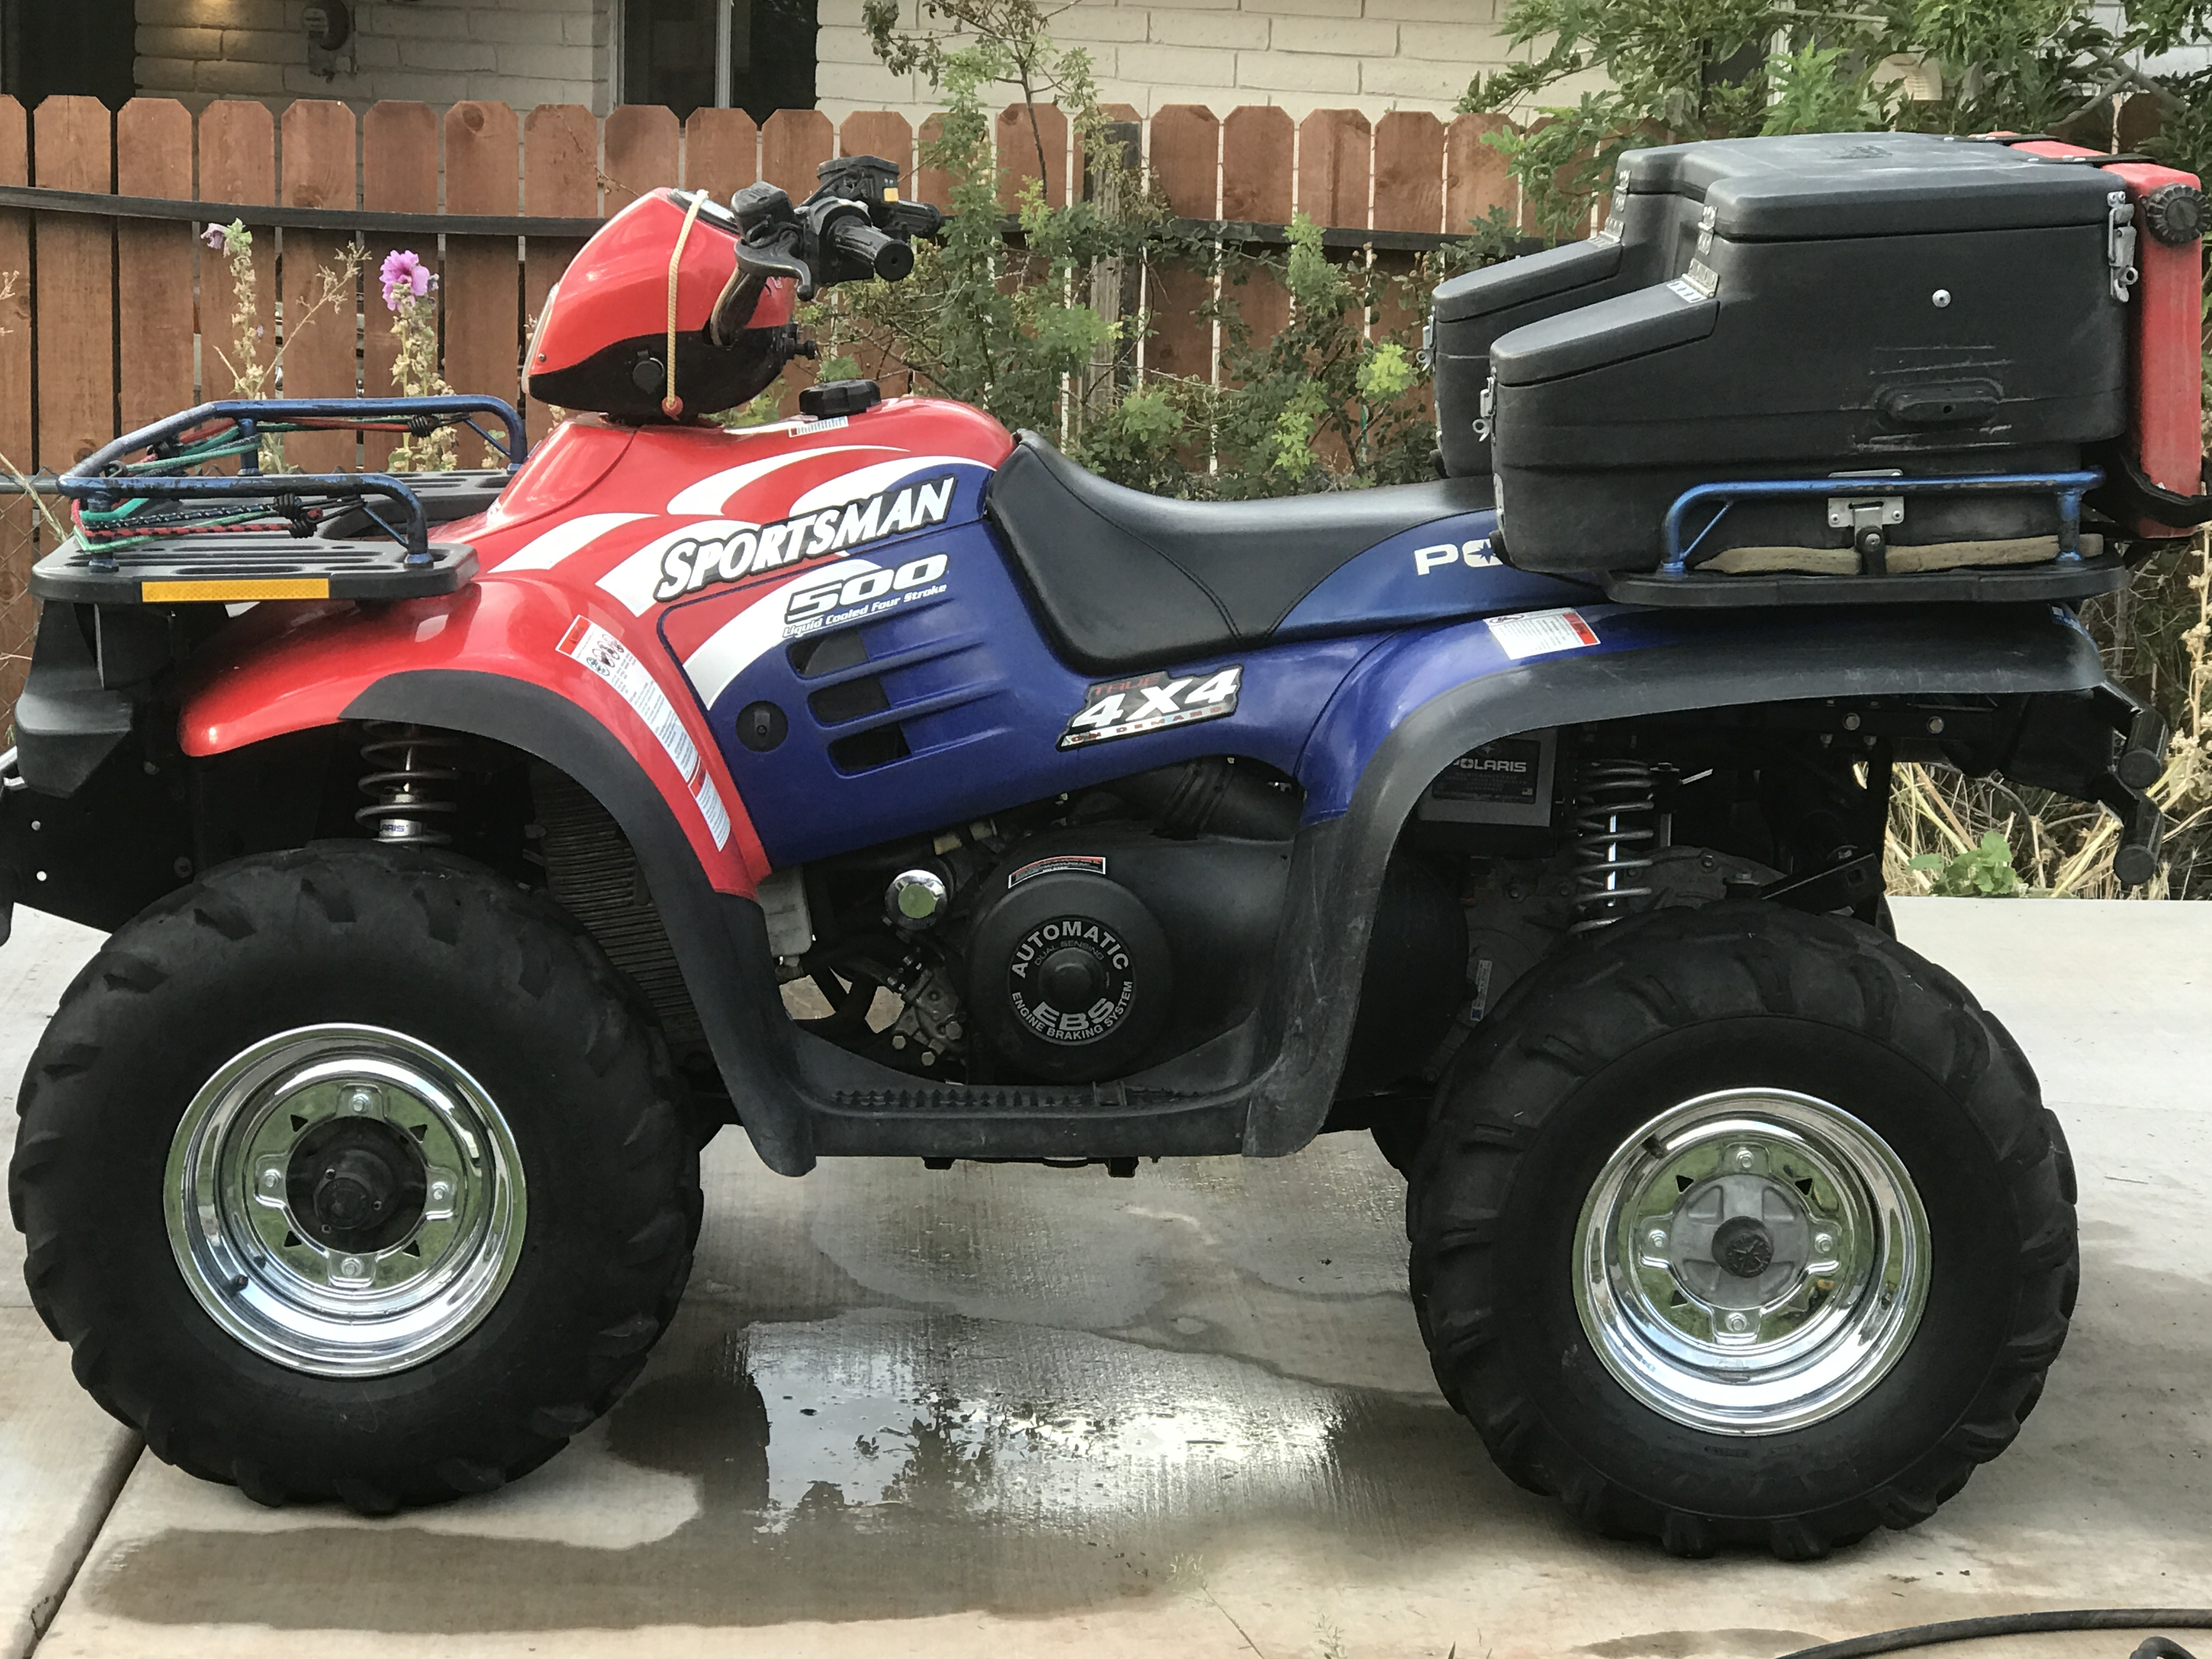 2002 Sportsman 500 Freedom Edition Polaris Atv Forum